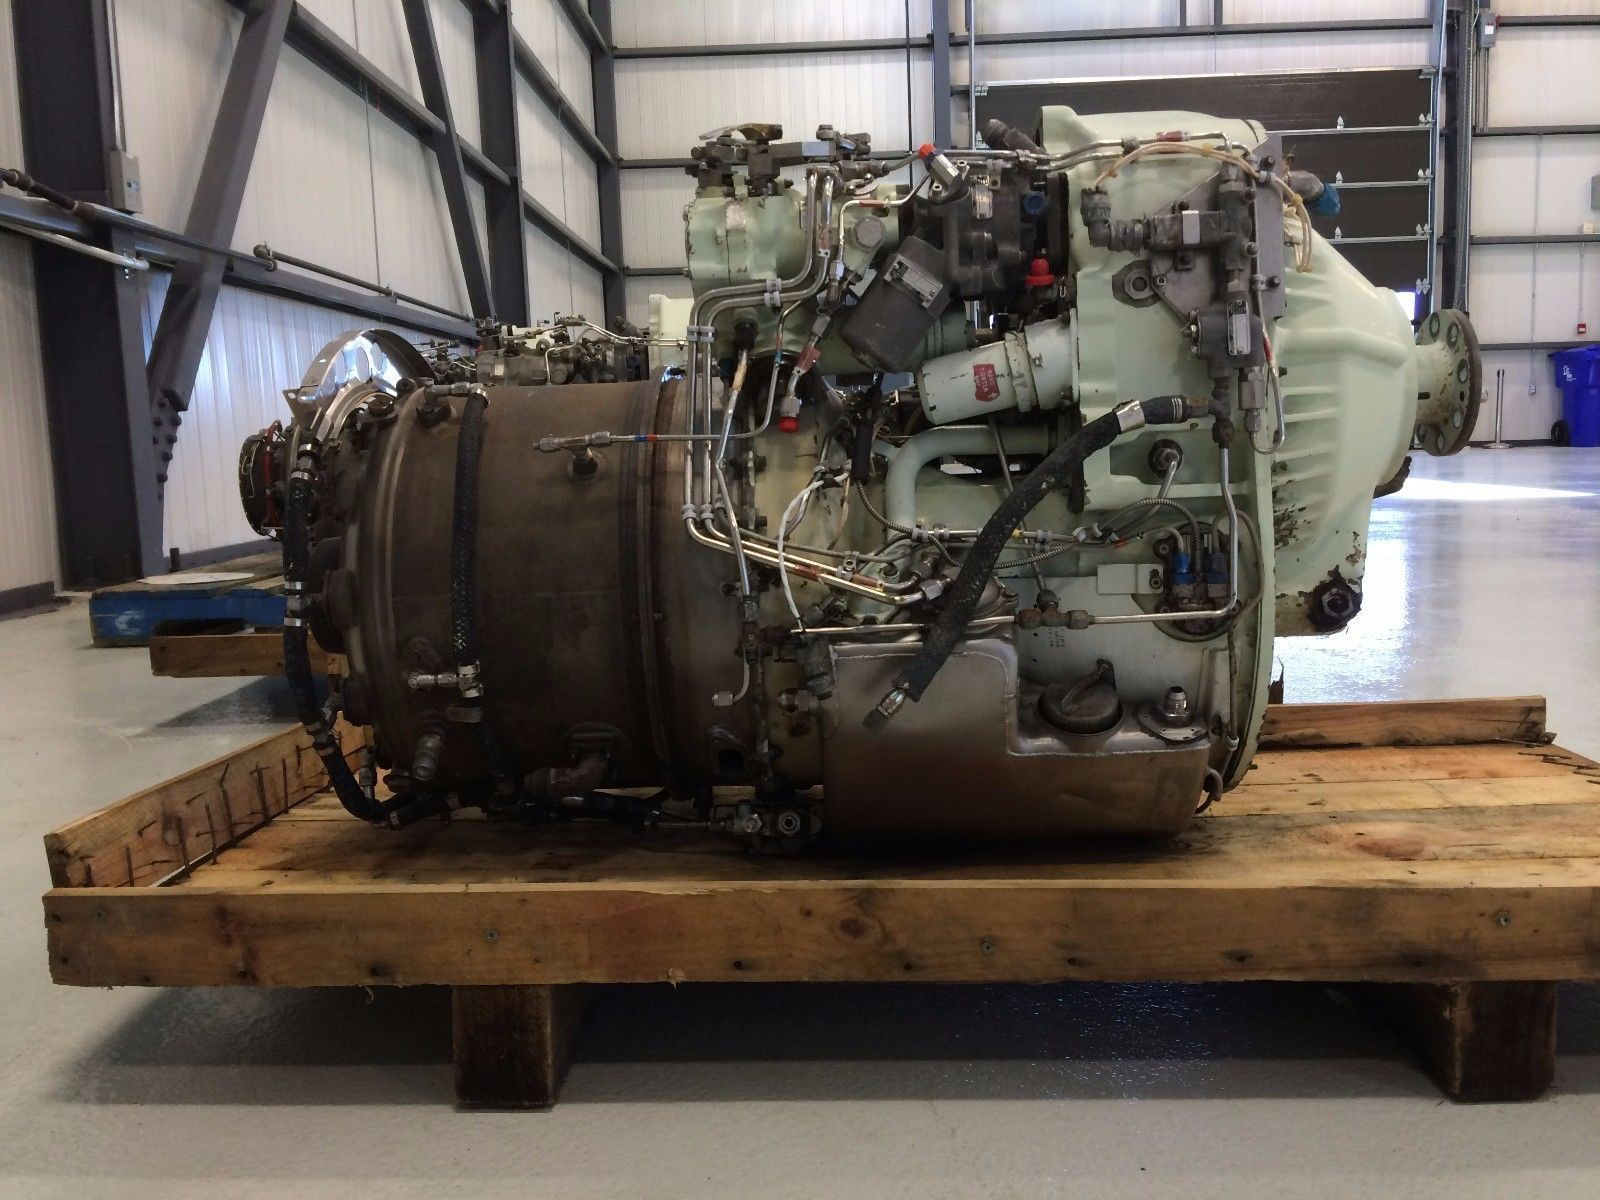 Garrett airesearch tpe 331 aircraft turboprop gas turbine qty 3